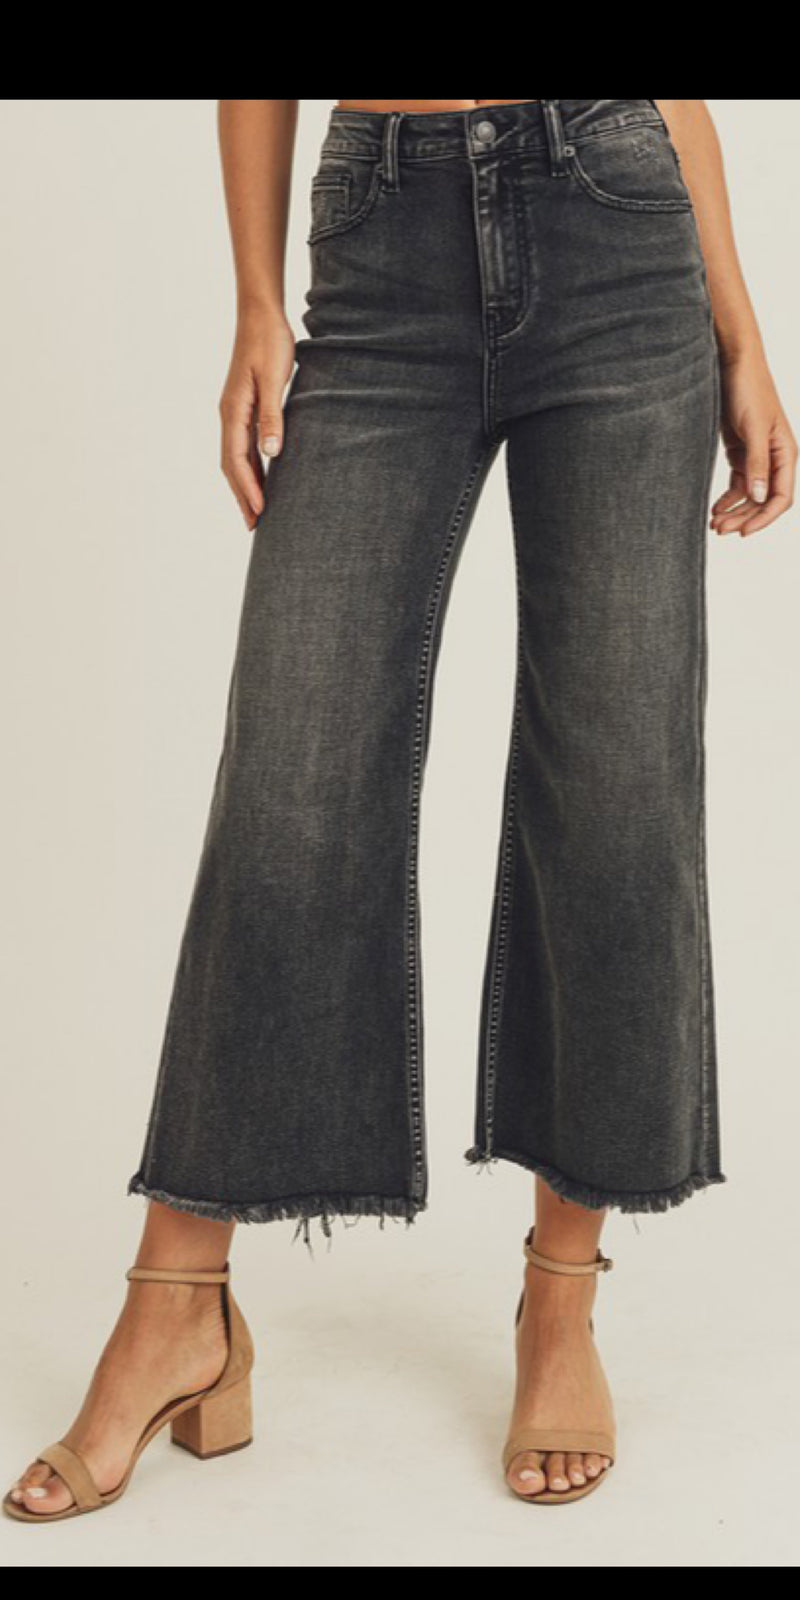 The Dutton Black Jeans - Also in Plus Size